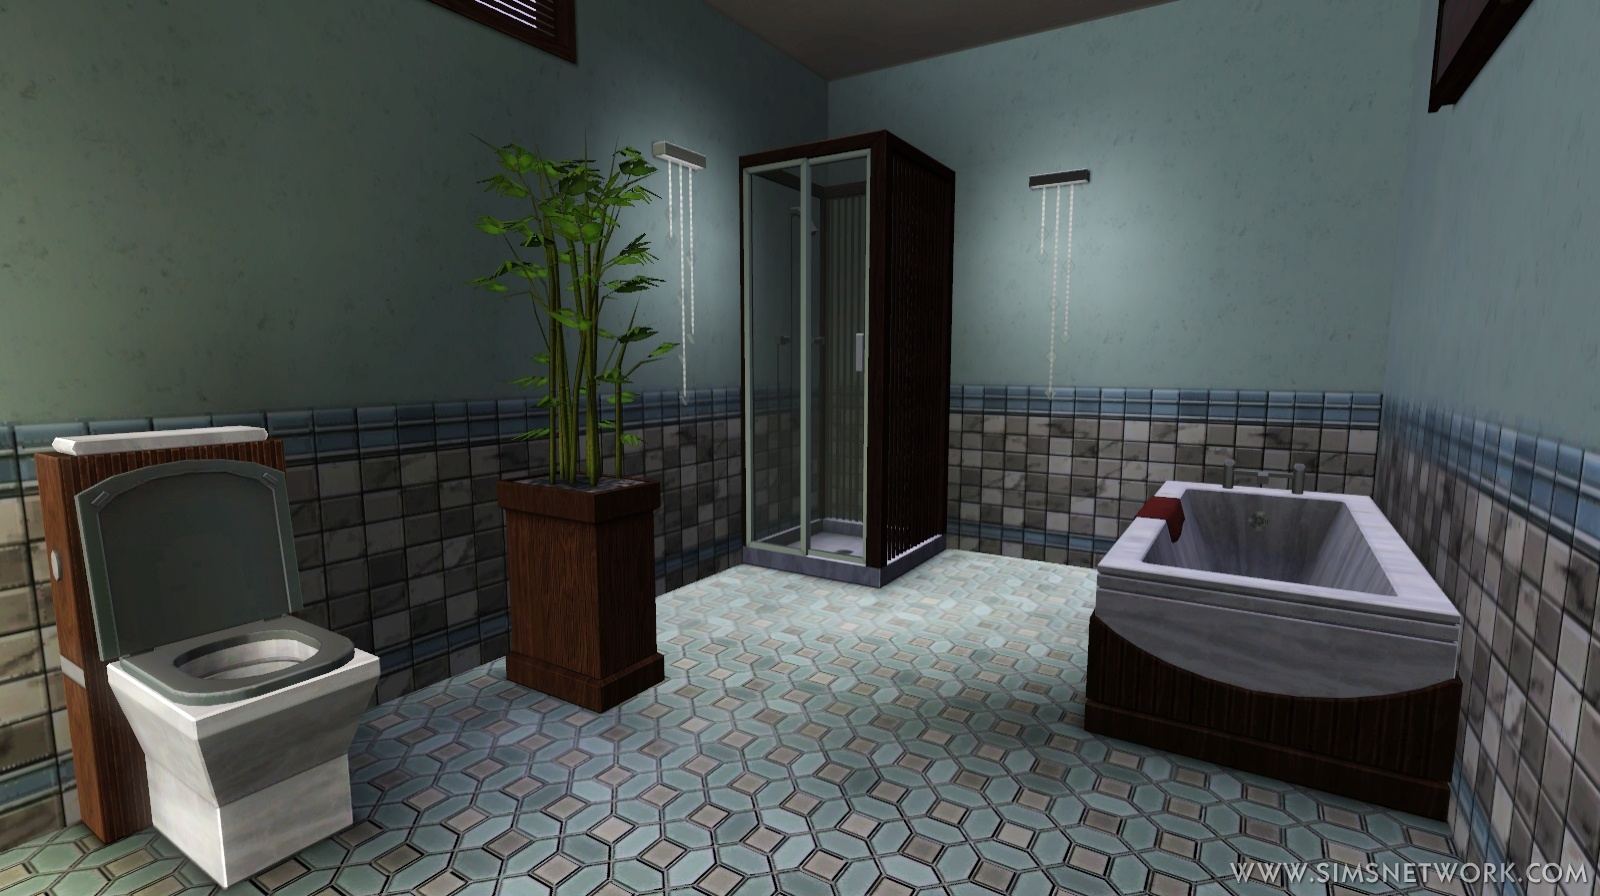 The sims 3 master suite stuff review snw for Restroom stuff